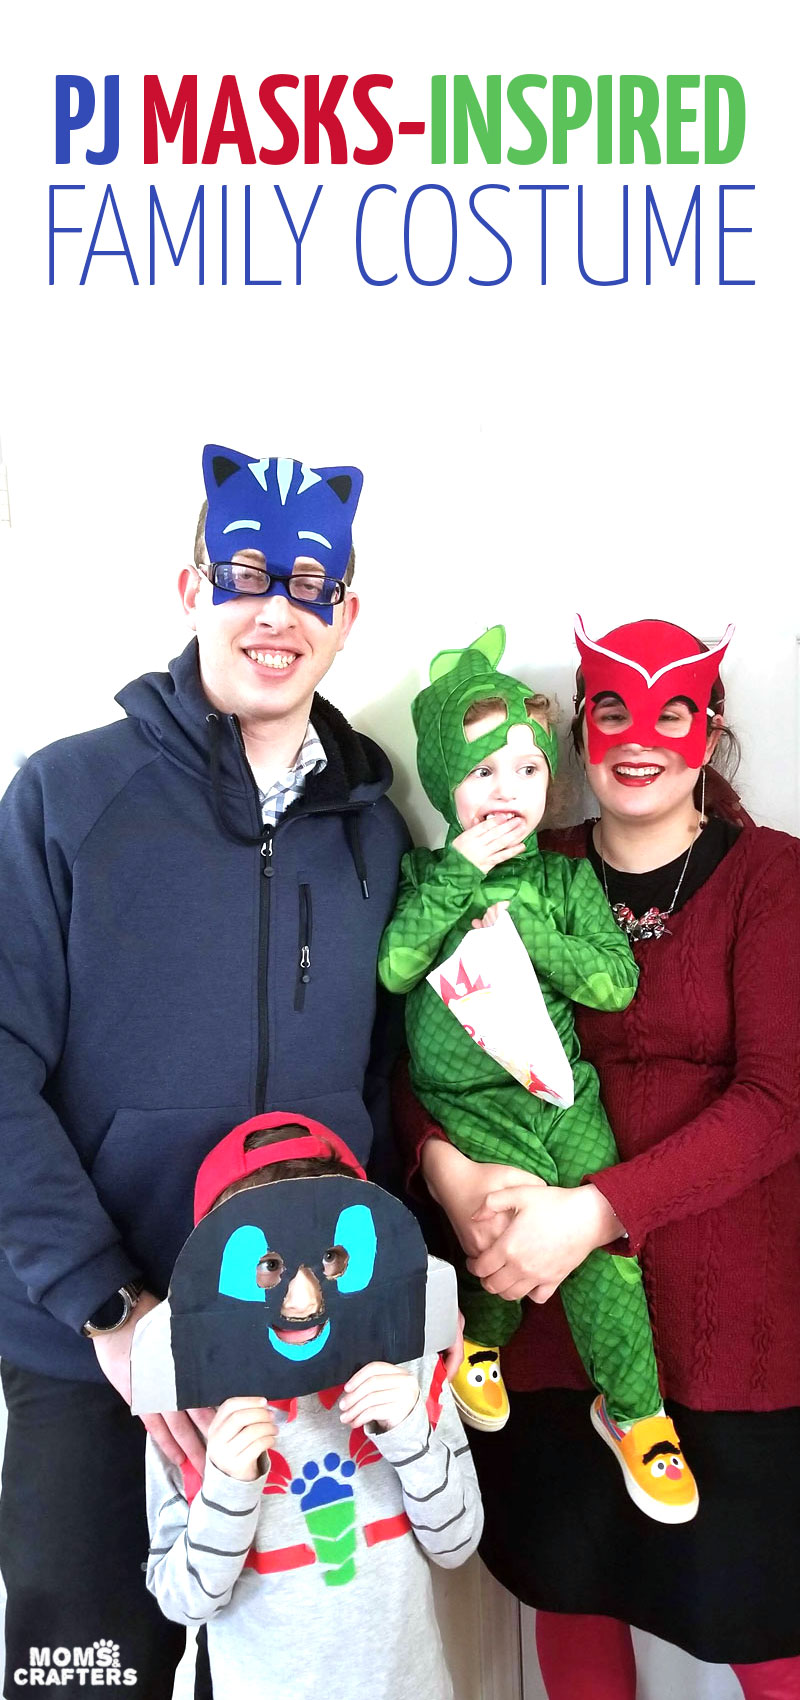 Click to check out our PJ masks family costumes! This DIY family costume idea is a great group costume for preschoolers, toddlers, and families. It includes PJ masks characters and inspired DIY costumes for catboy and owlette.